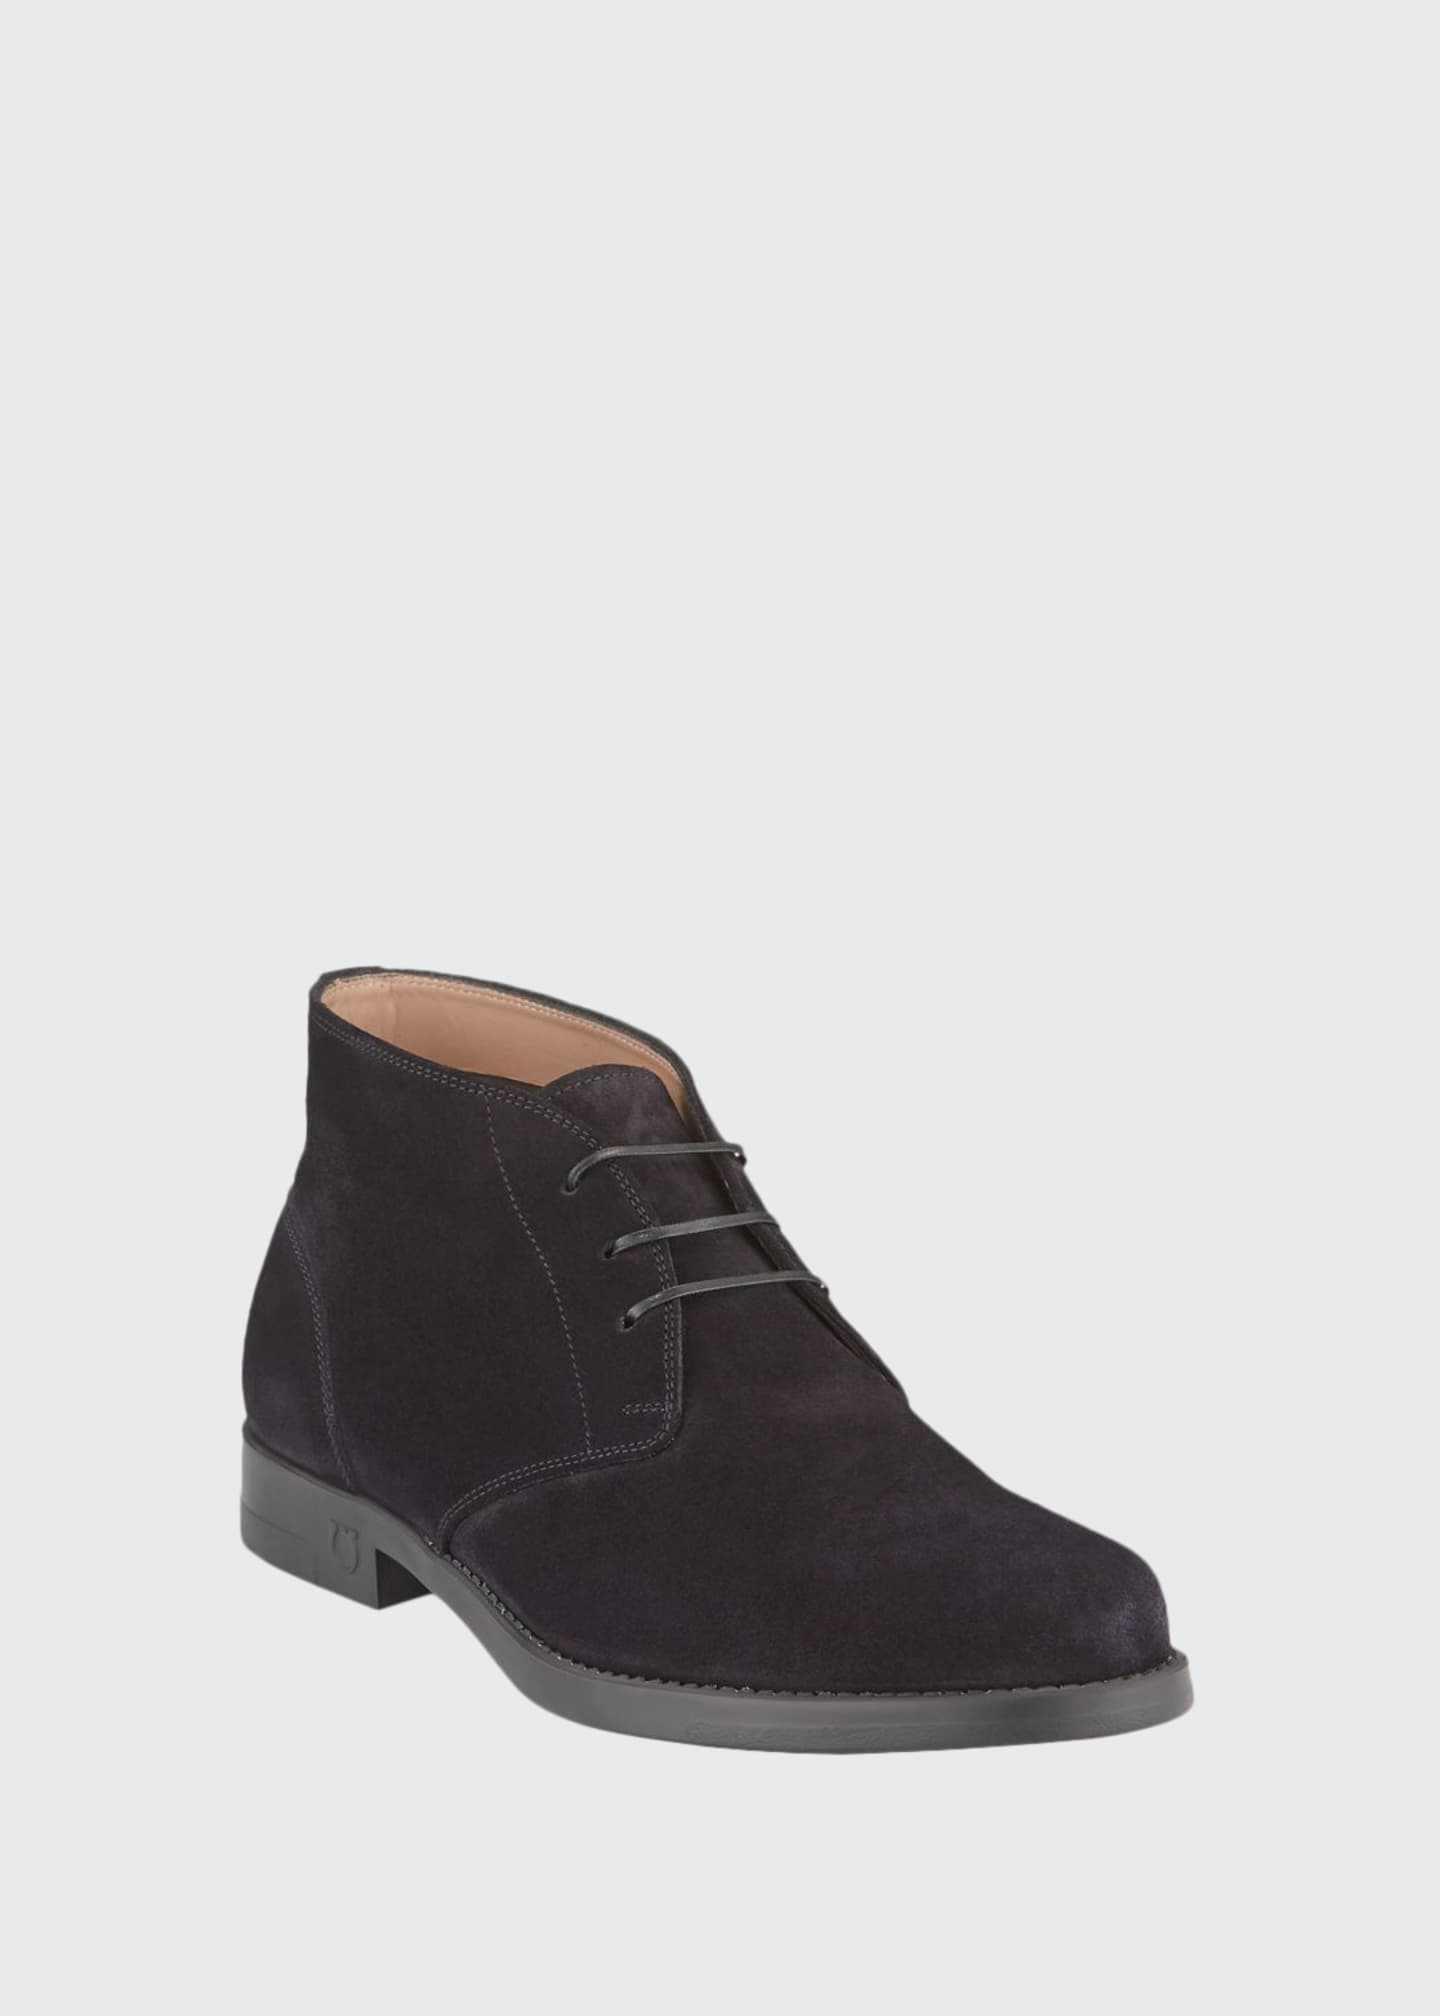 Image 1 of 3: Men's Sachie-2 Lightweight Suede Chukka Boots